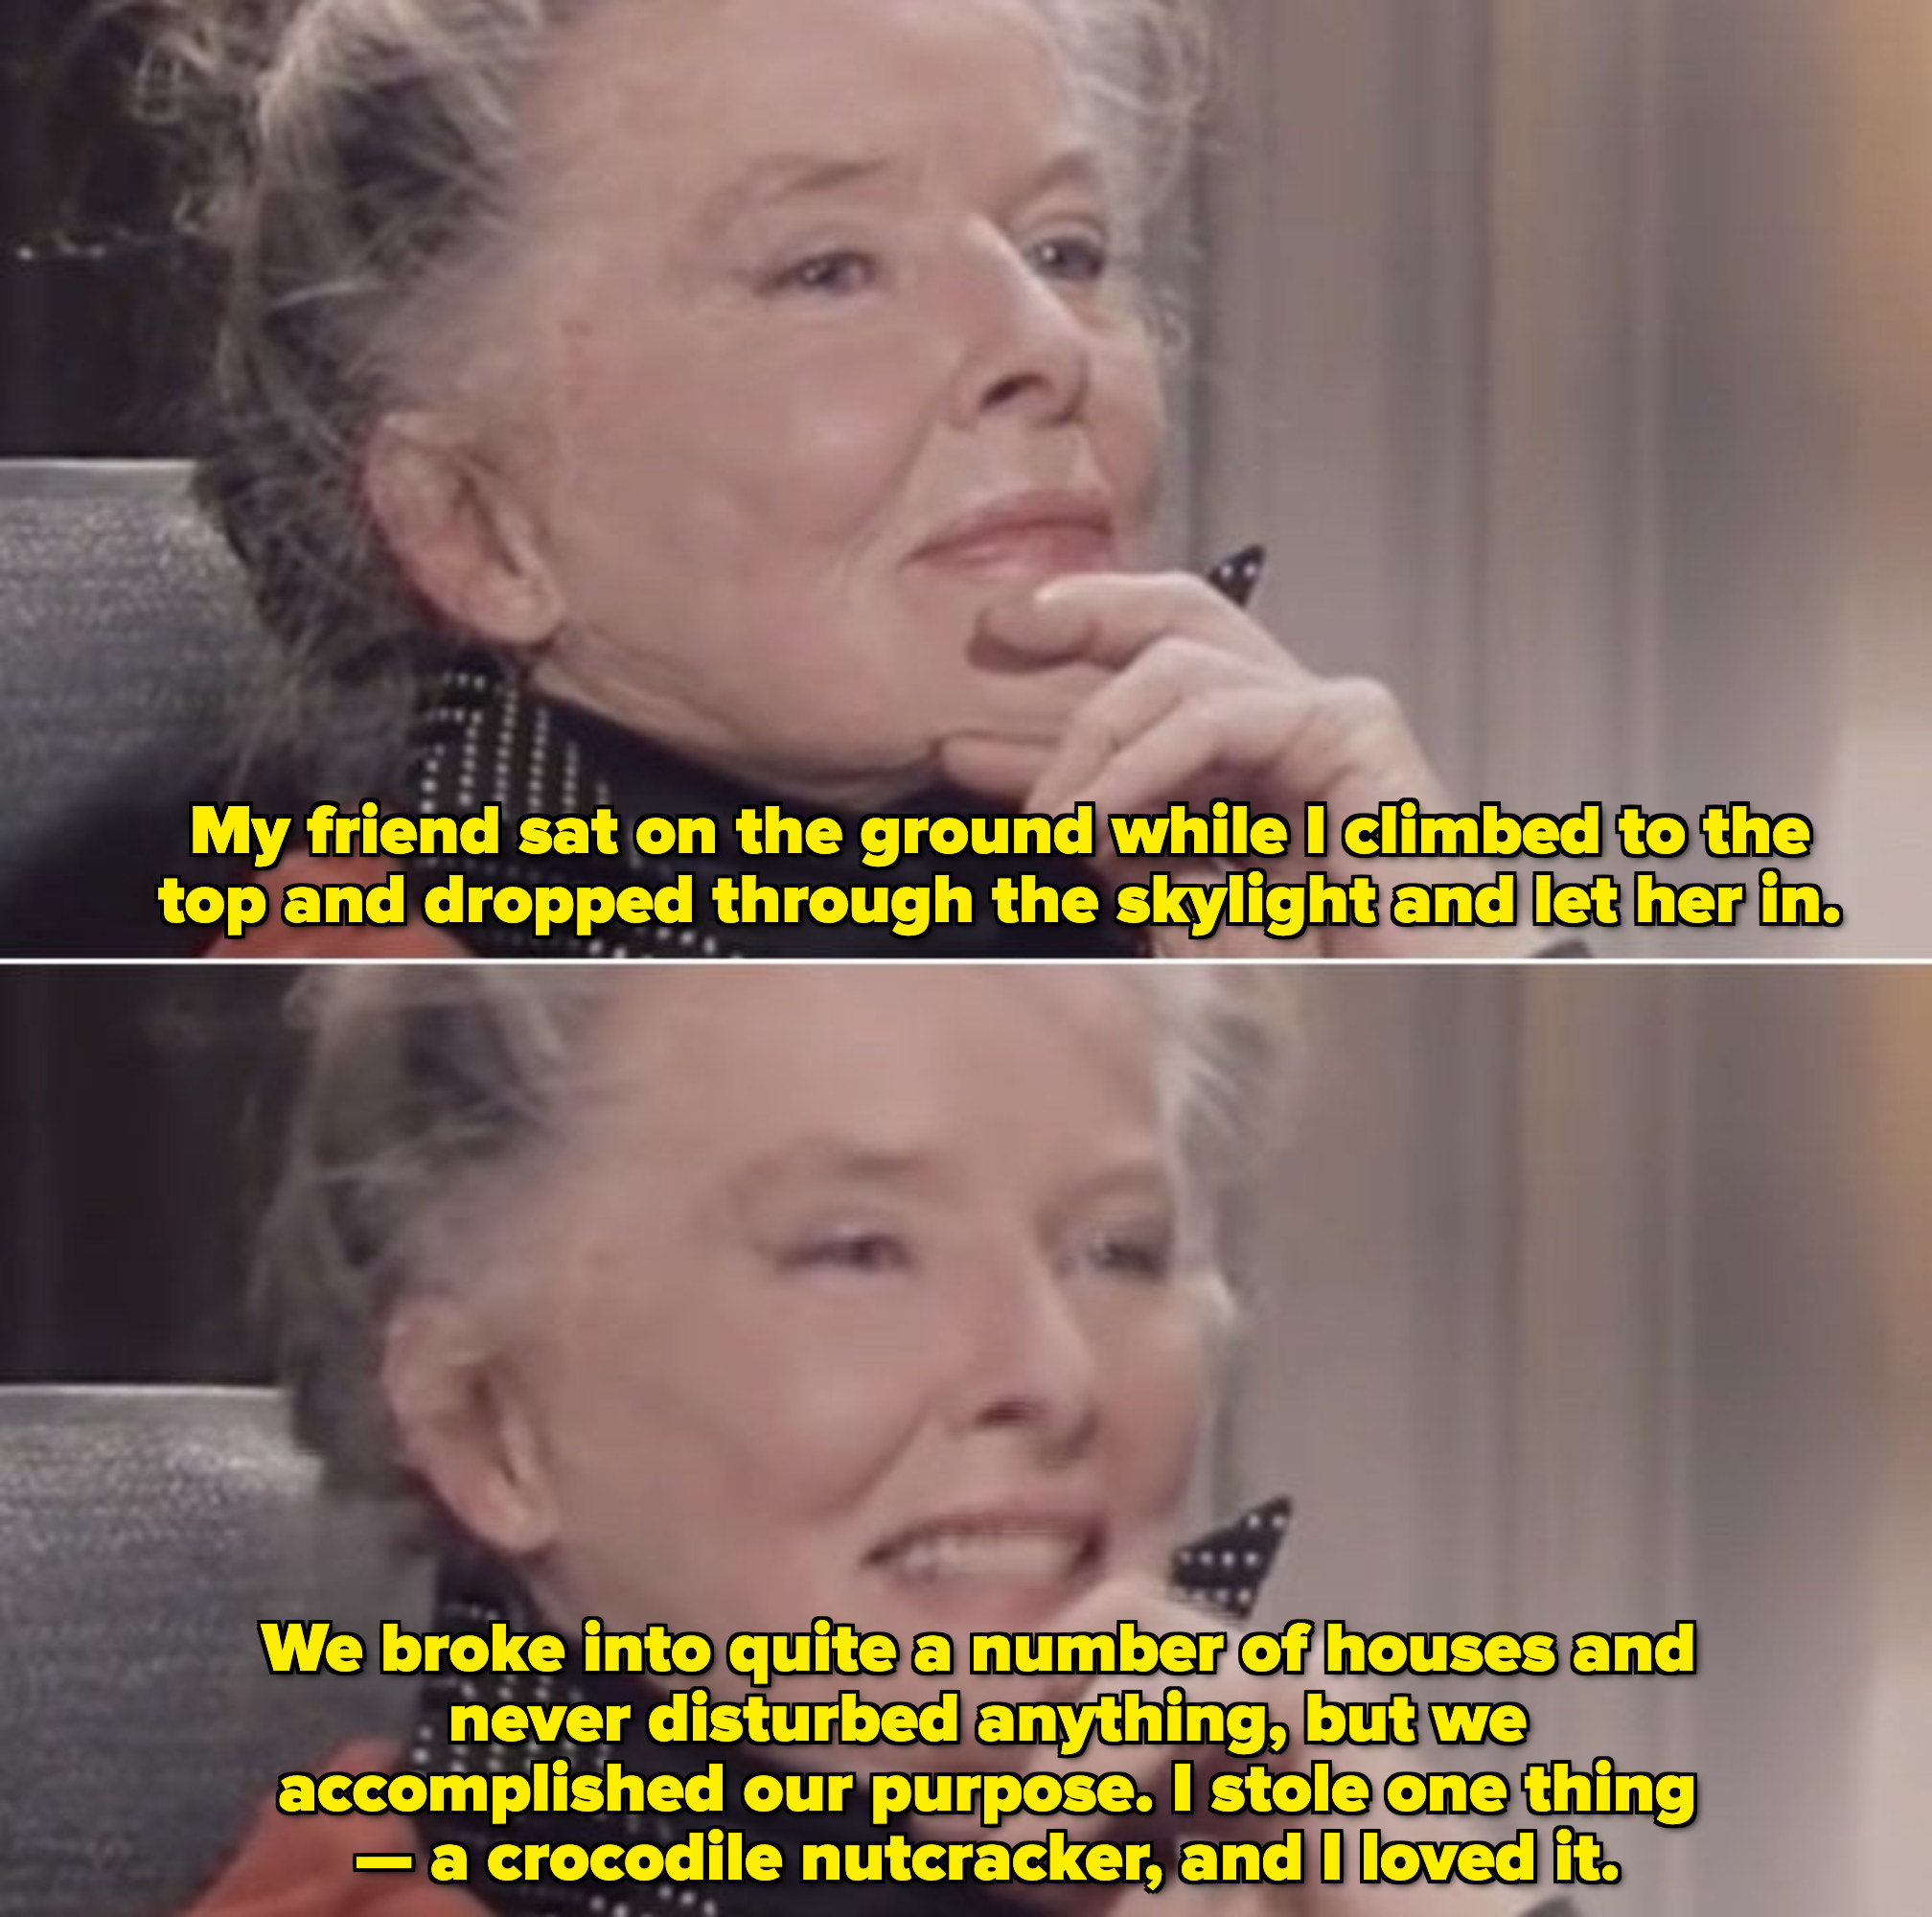 Katharine Hepburn during an interview in the '80s, talking about breaking into houses and stealing items, like a crocodile nutcracker